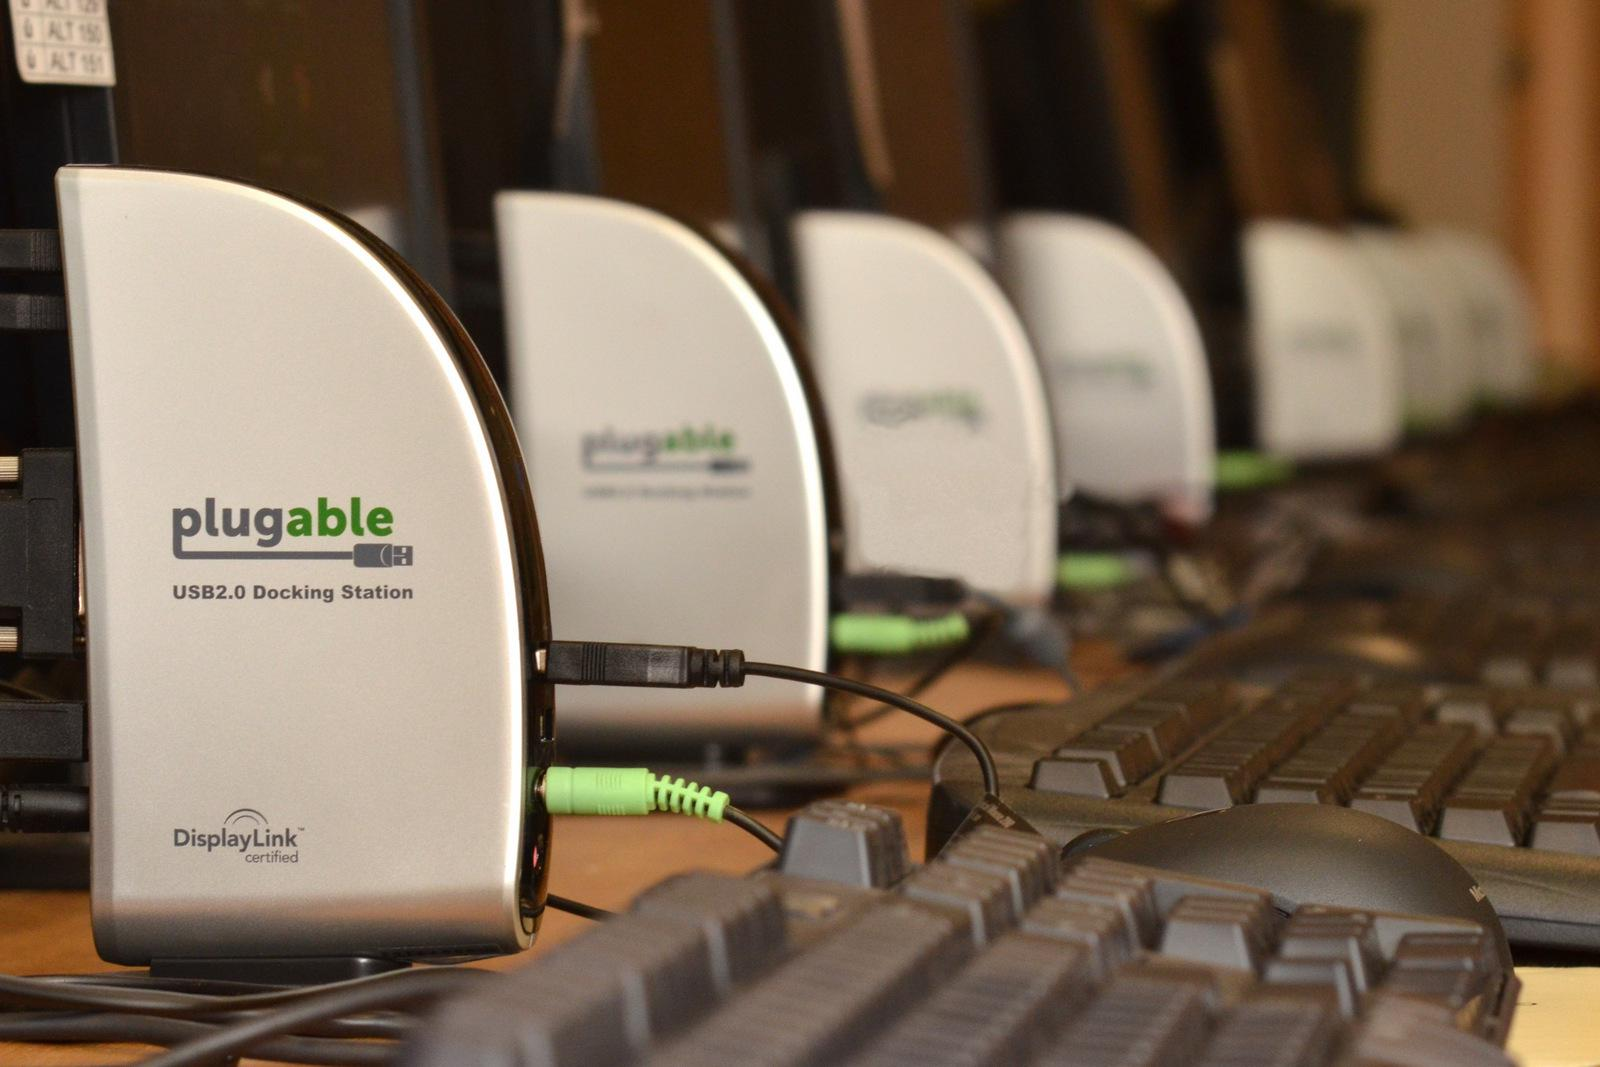 Plugable Multiseat docking stations at the French Immersion School of Washington